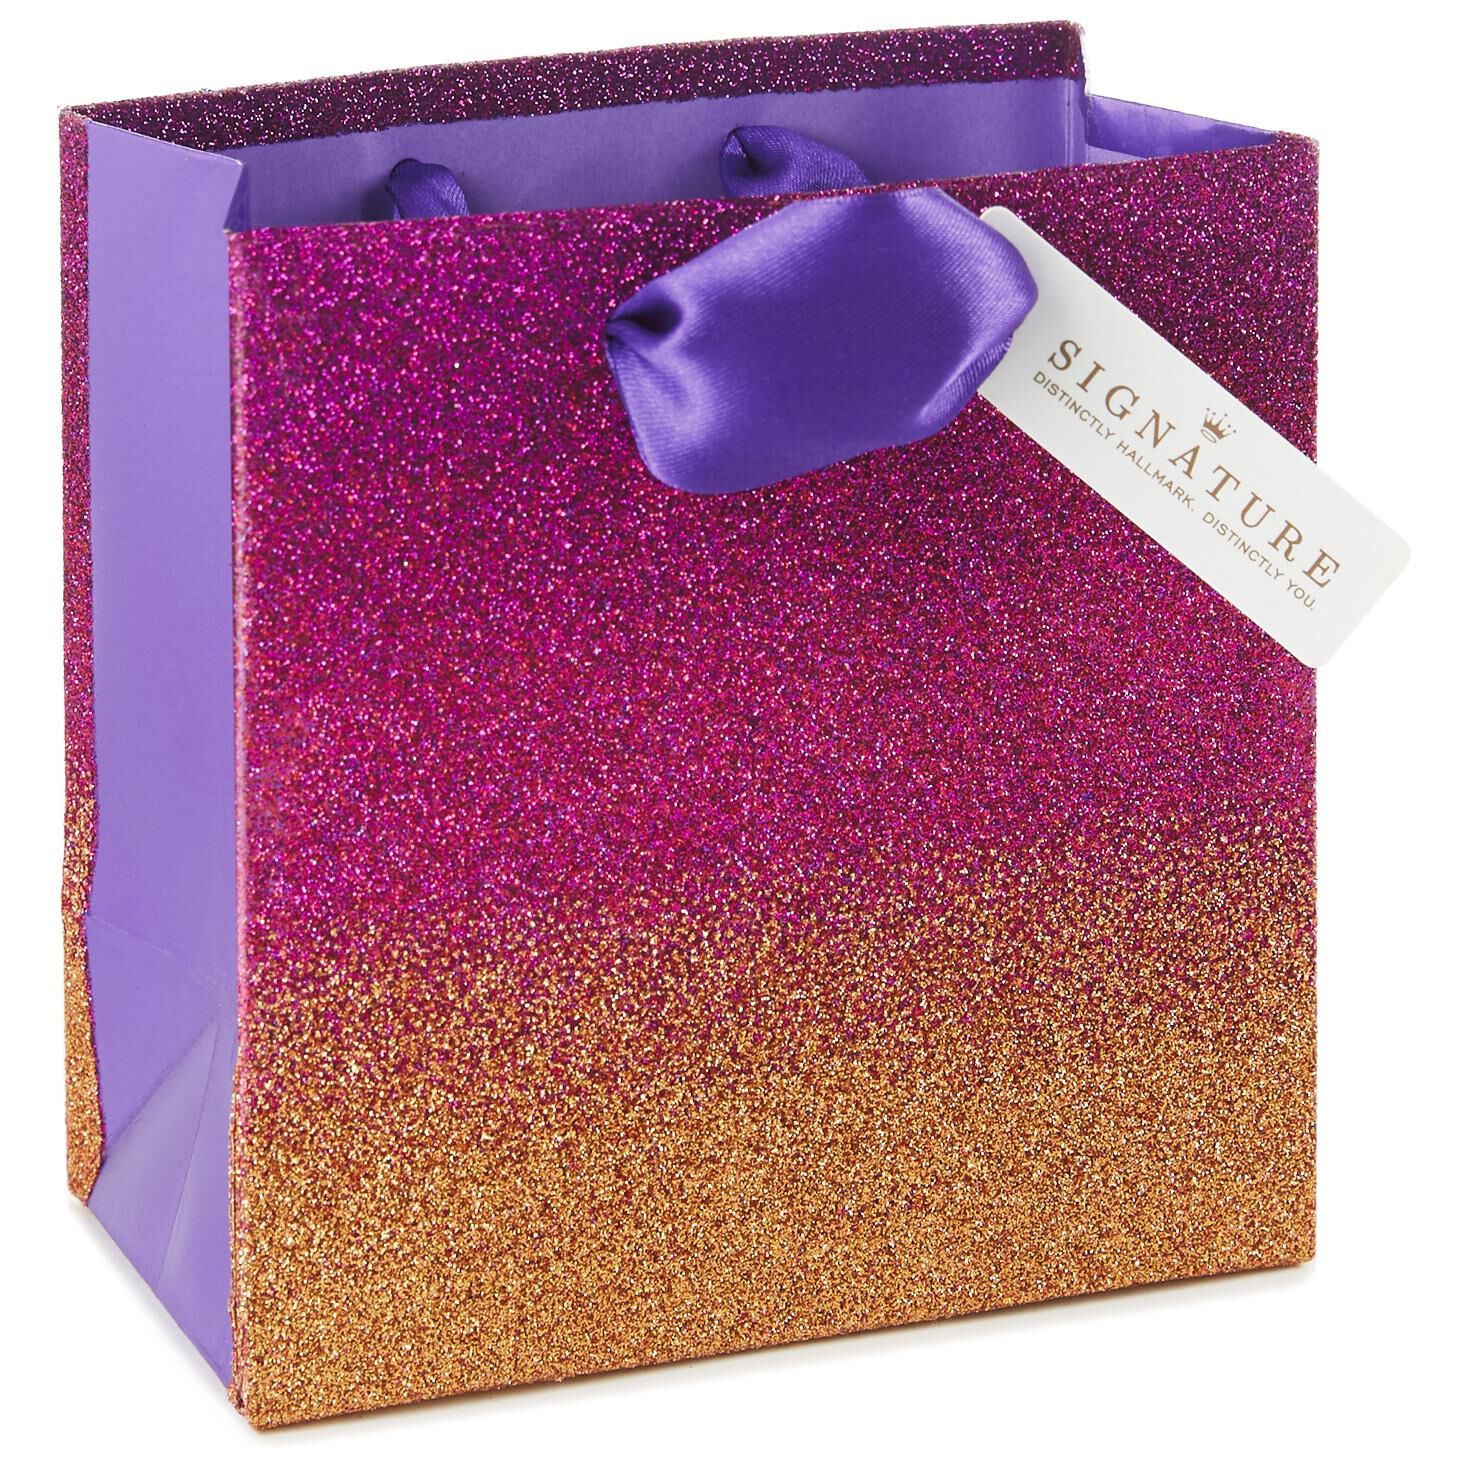 ... Purple/Red Ombre Glitter Small Square Gift Bag 5.5   sc 1 st  Hallmark & Purple/Red Ombre Glitter Small Square Gift Bag 5.5